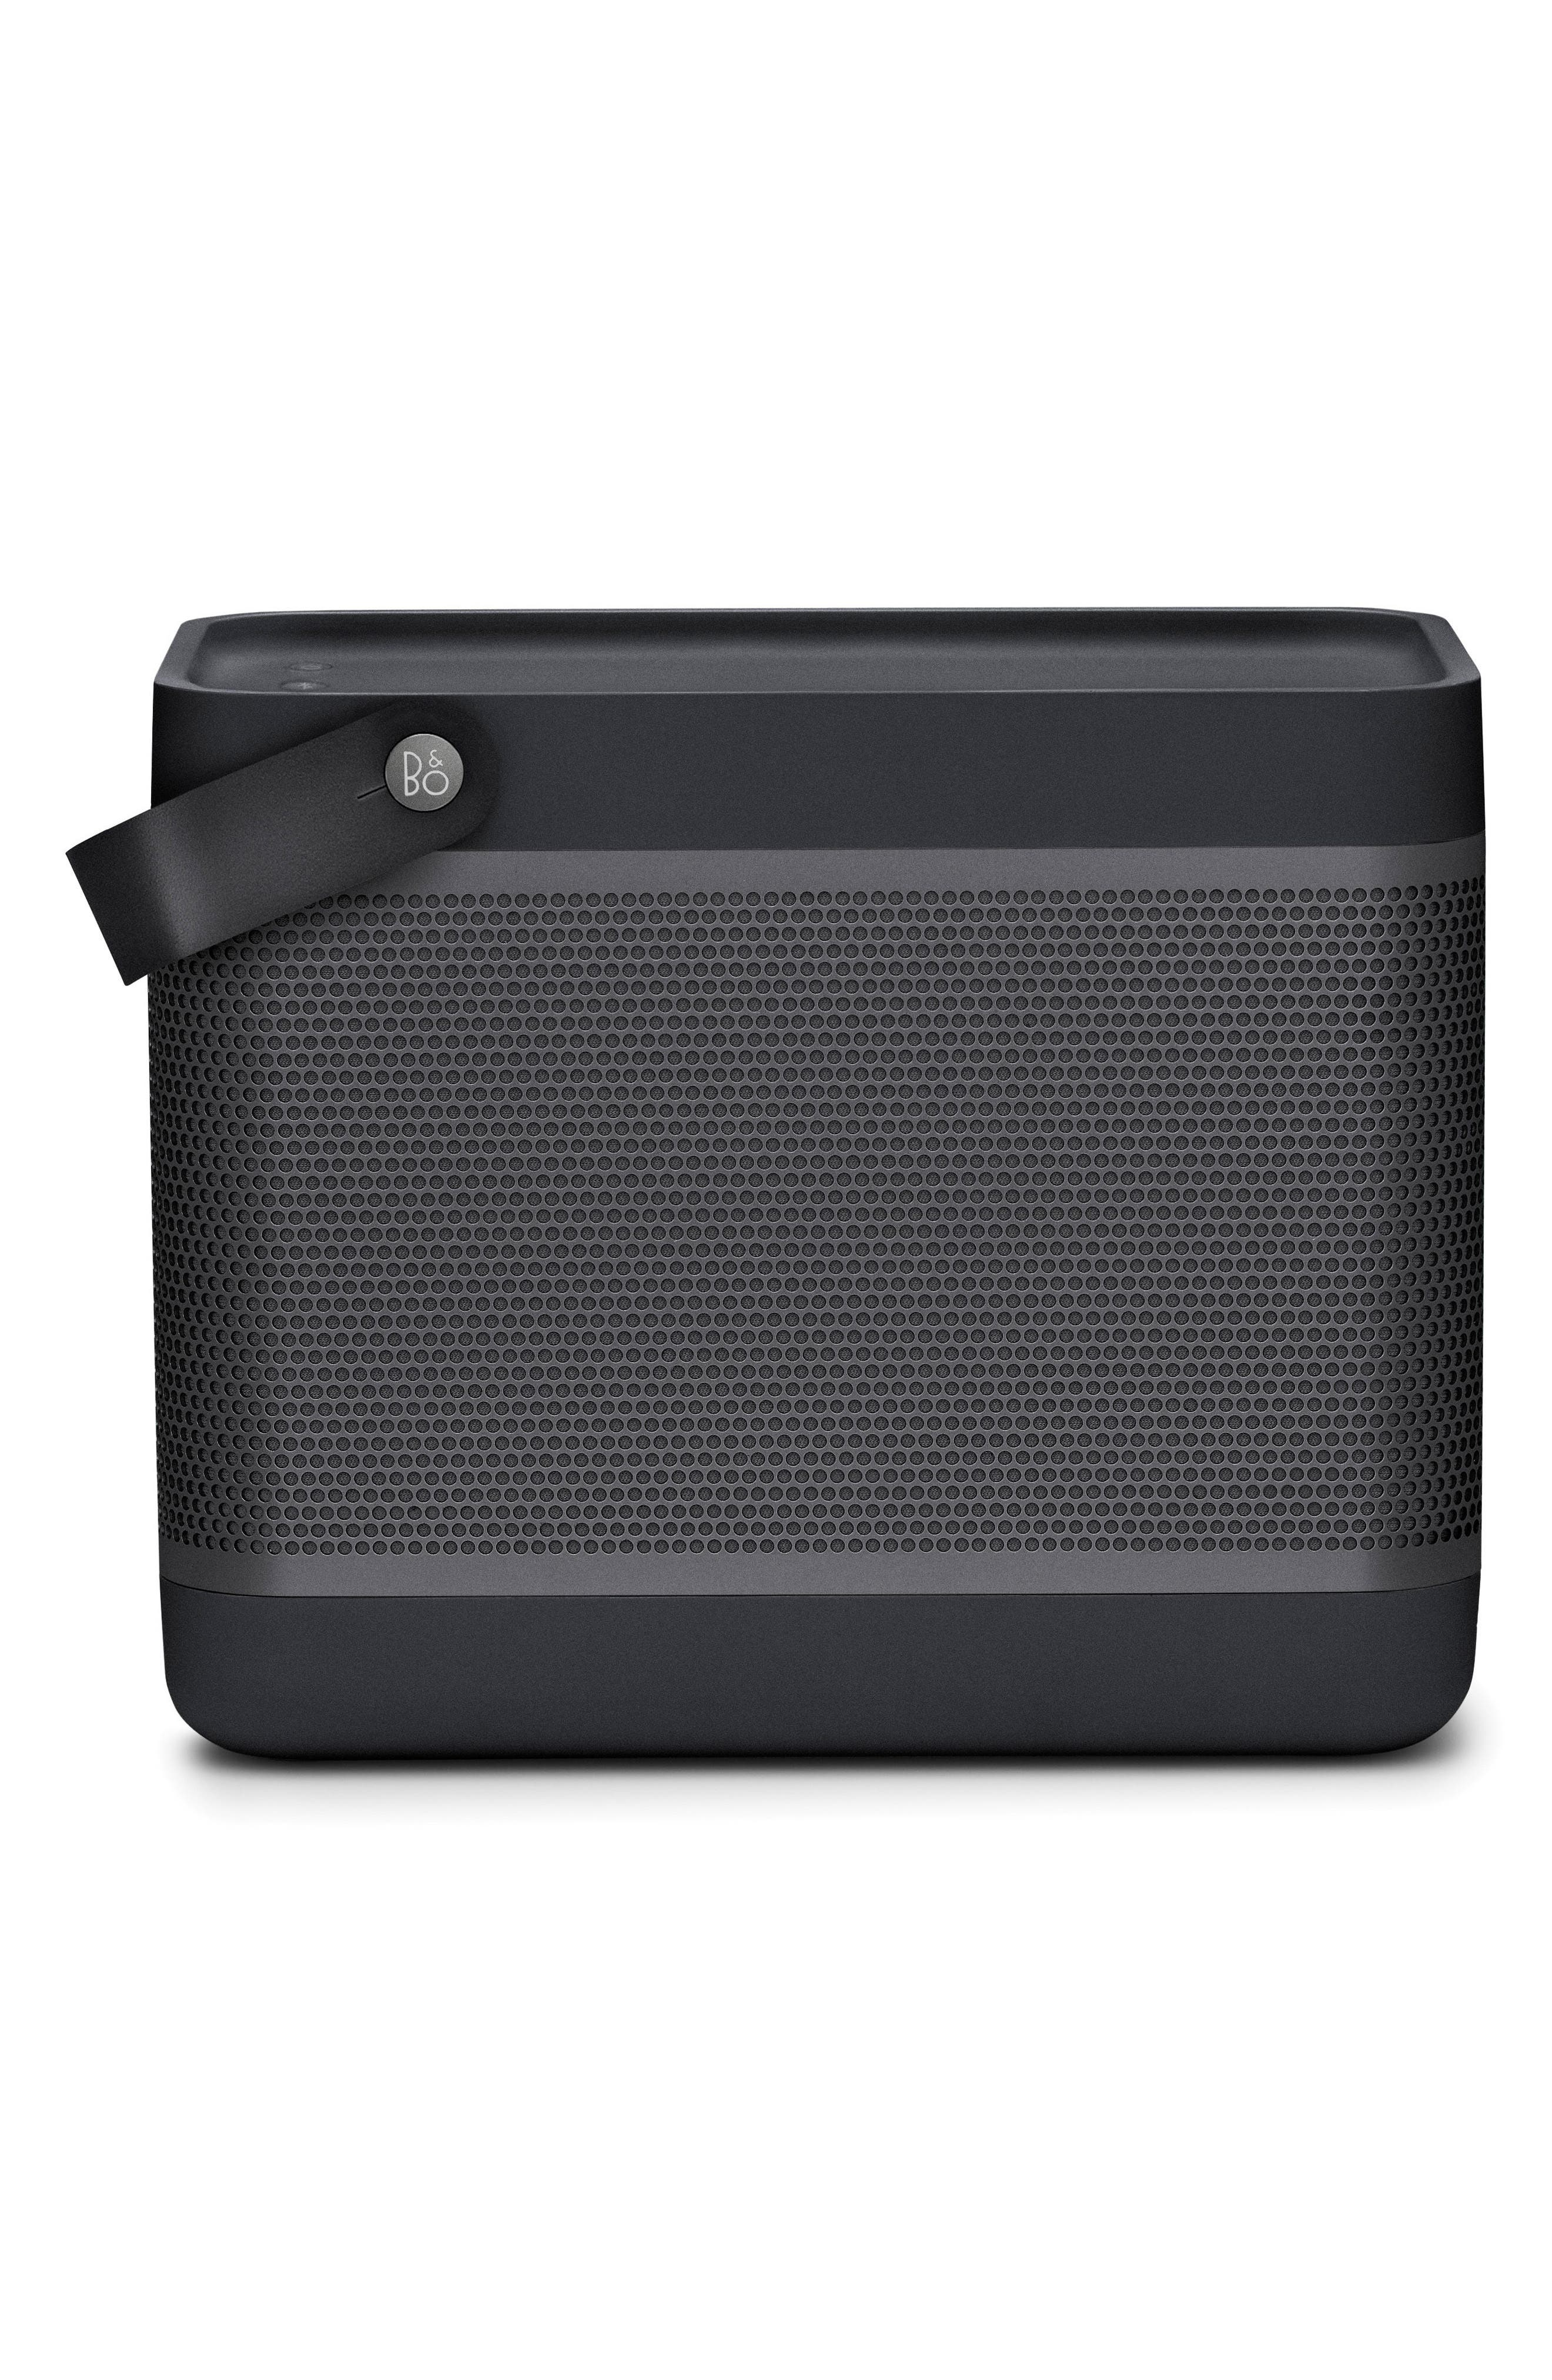 Beolit 17 Portable Bluetooth<sup>®</sup> Speaker,                             Main thumbnail 1, color,                             STONE GREY